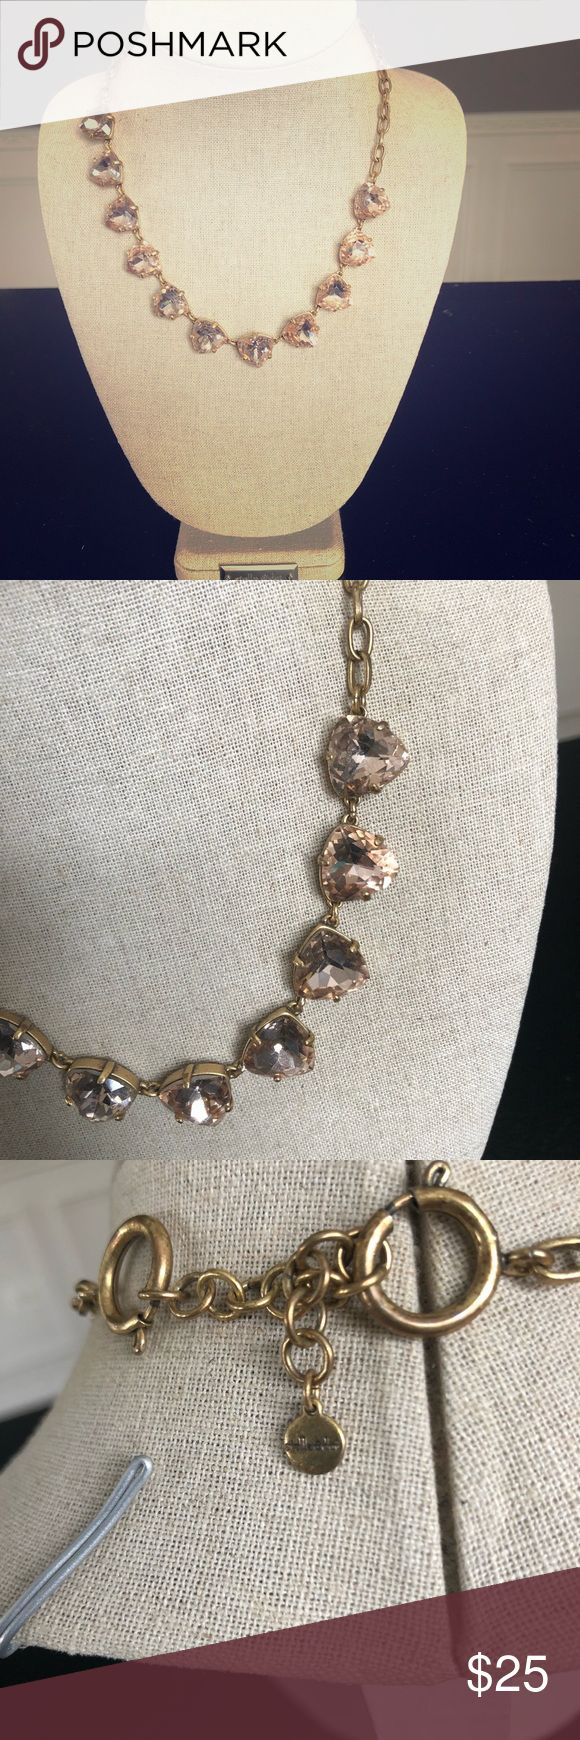 Stella & Dot Somervell peach necklace Peach stones & a gold necklace. Great to layer with delicate chains or wear on its own Stella & Dot Jewelry Necklaces